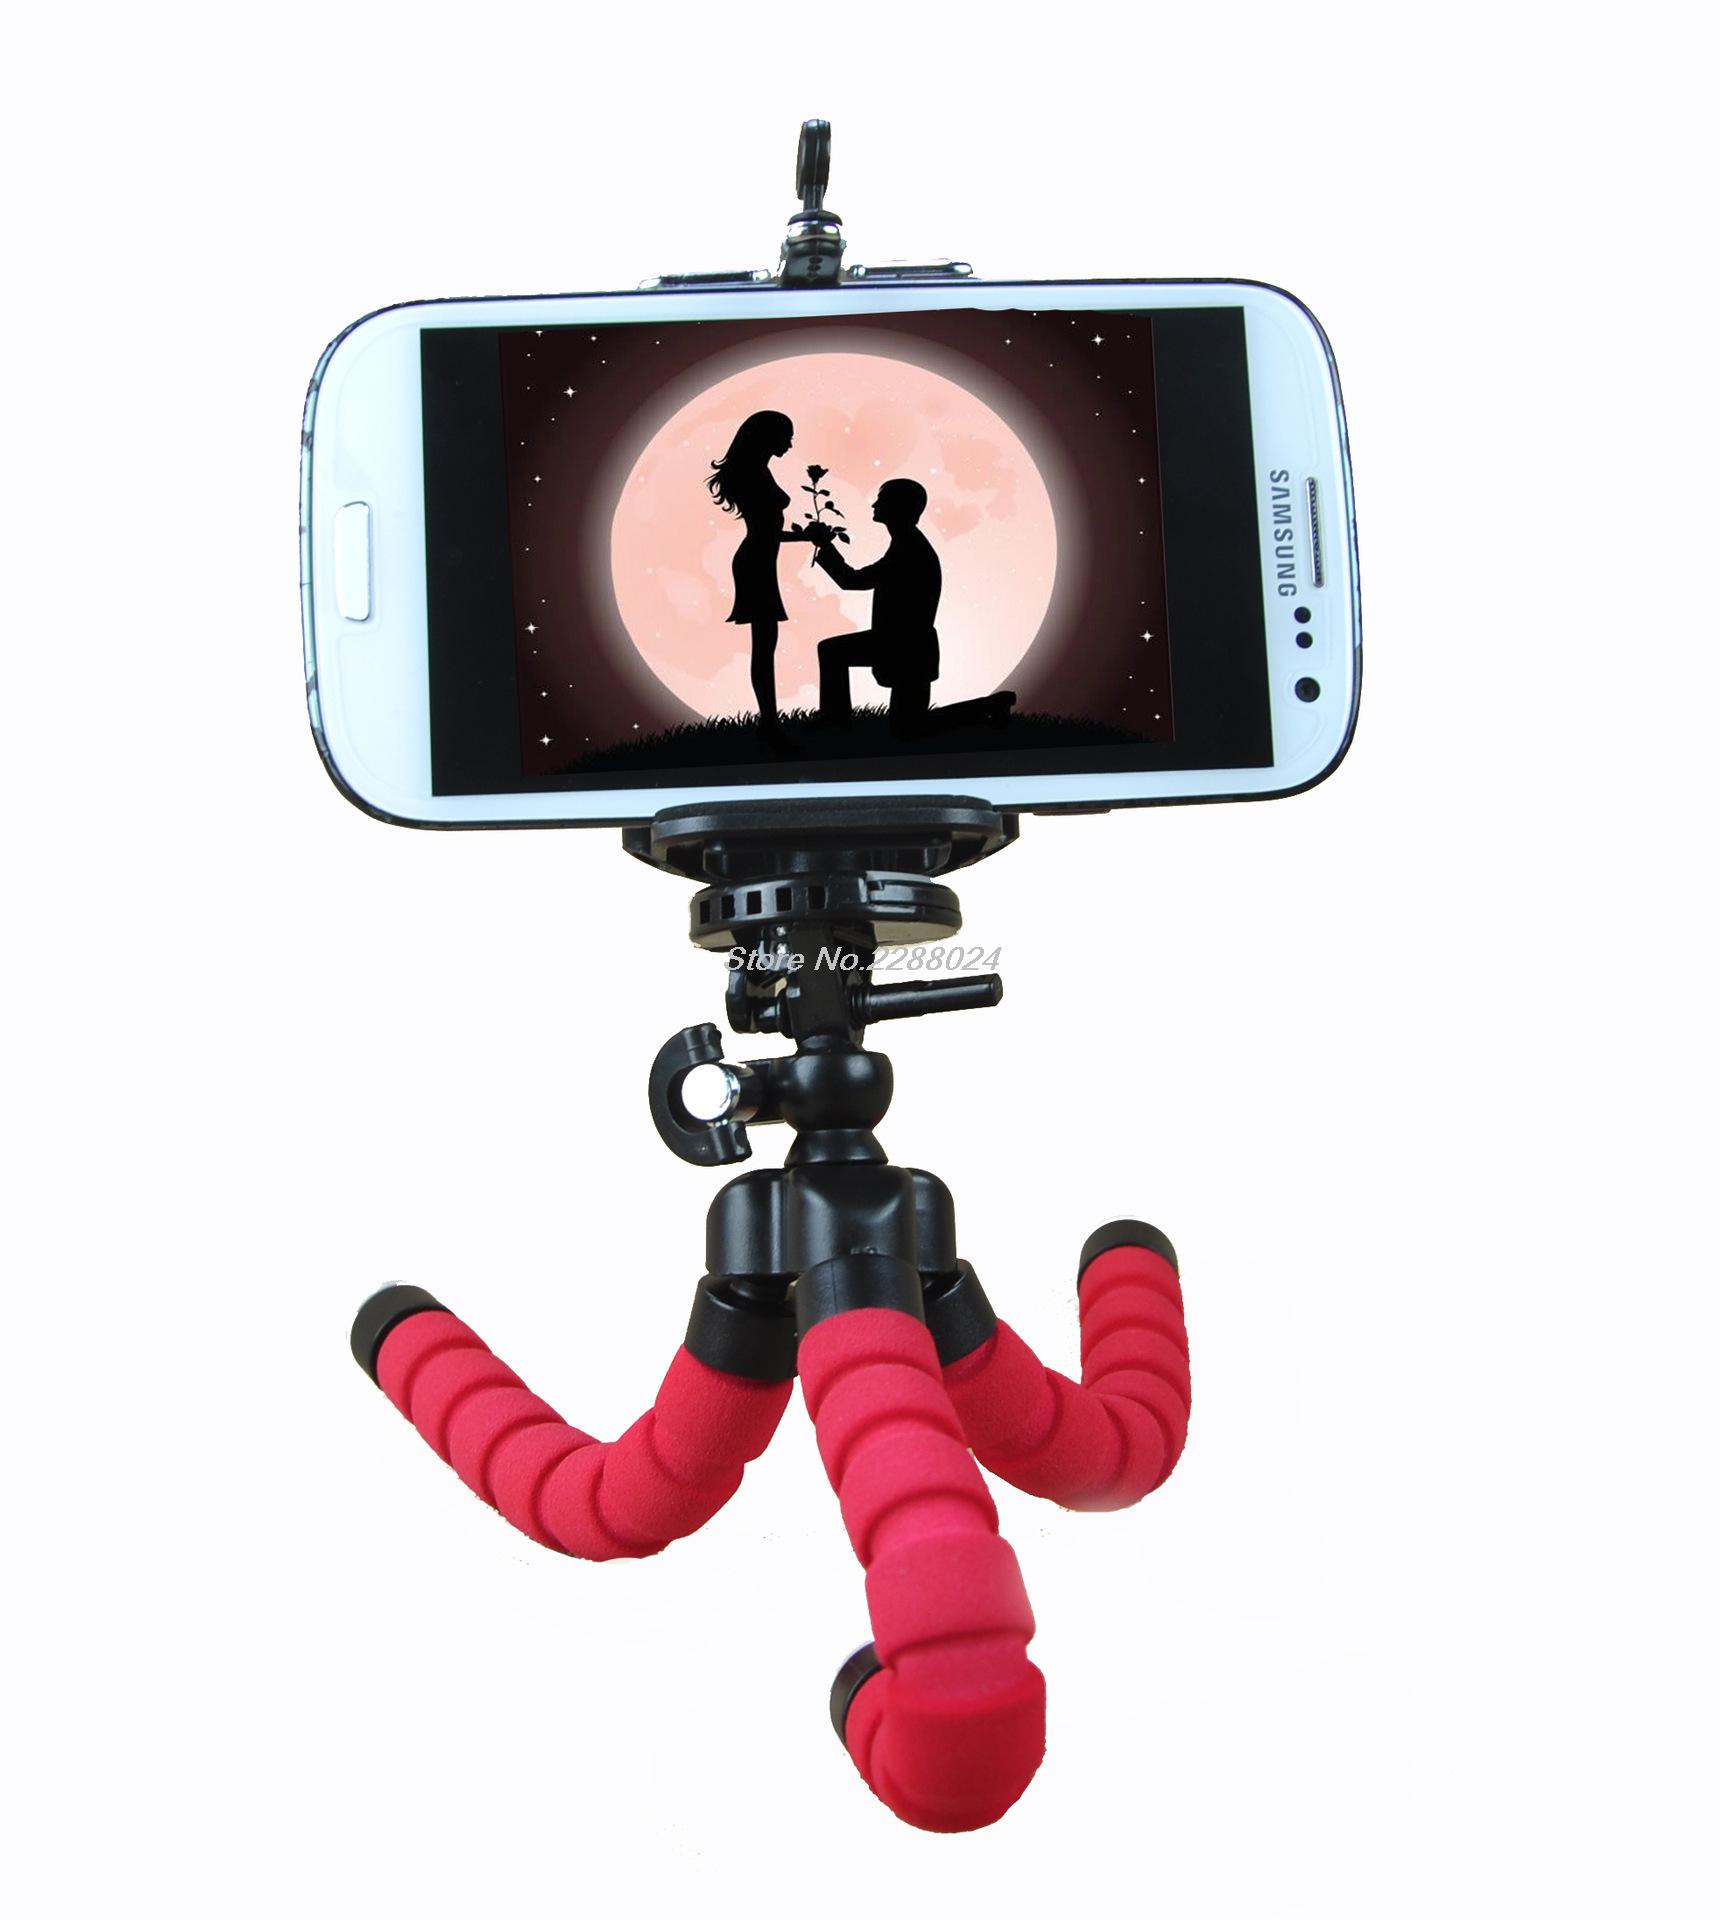 Hot Sale Car Phone Holder Flexible Octopus Tripod For Nokia Lumia 520 610 620 625 630 710 800 830 920 925 X2 XL Cases Gel Shell